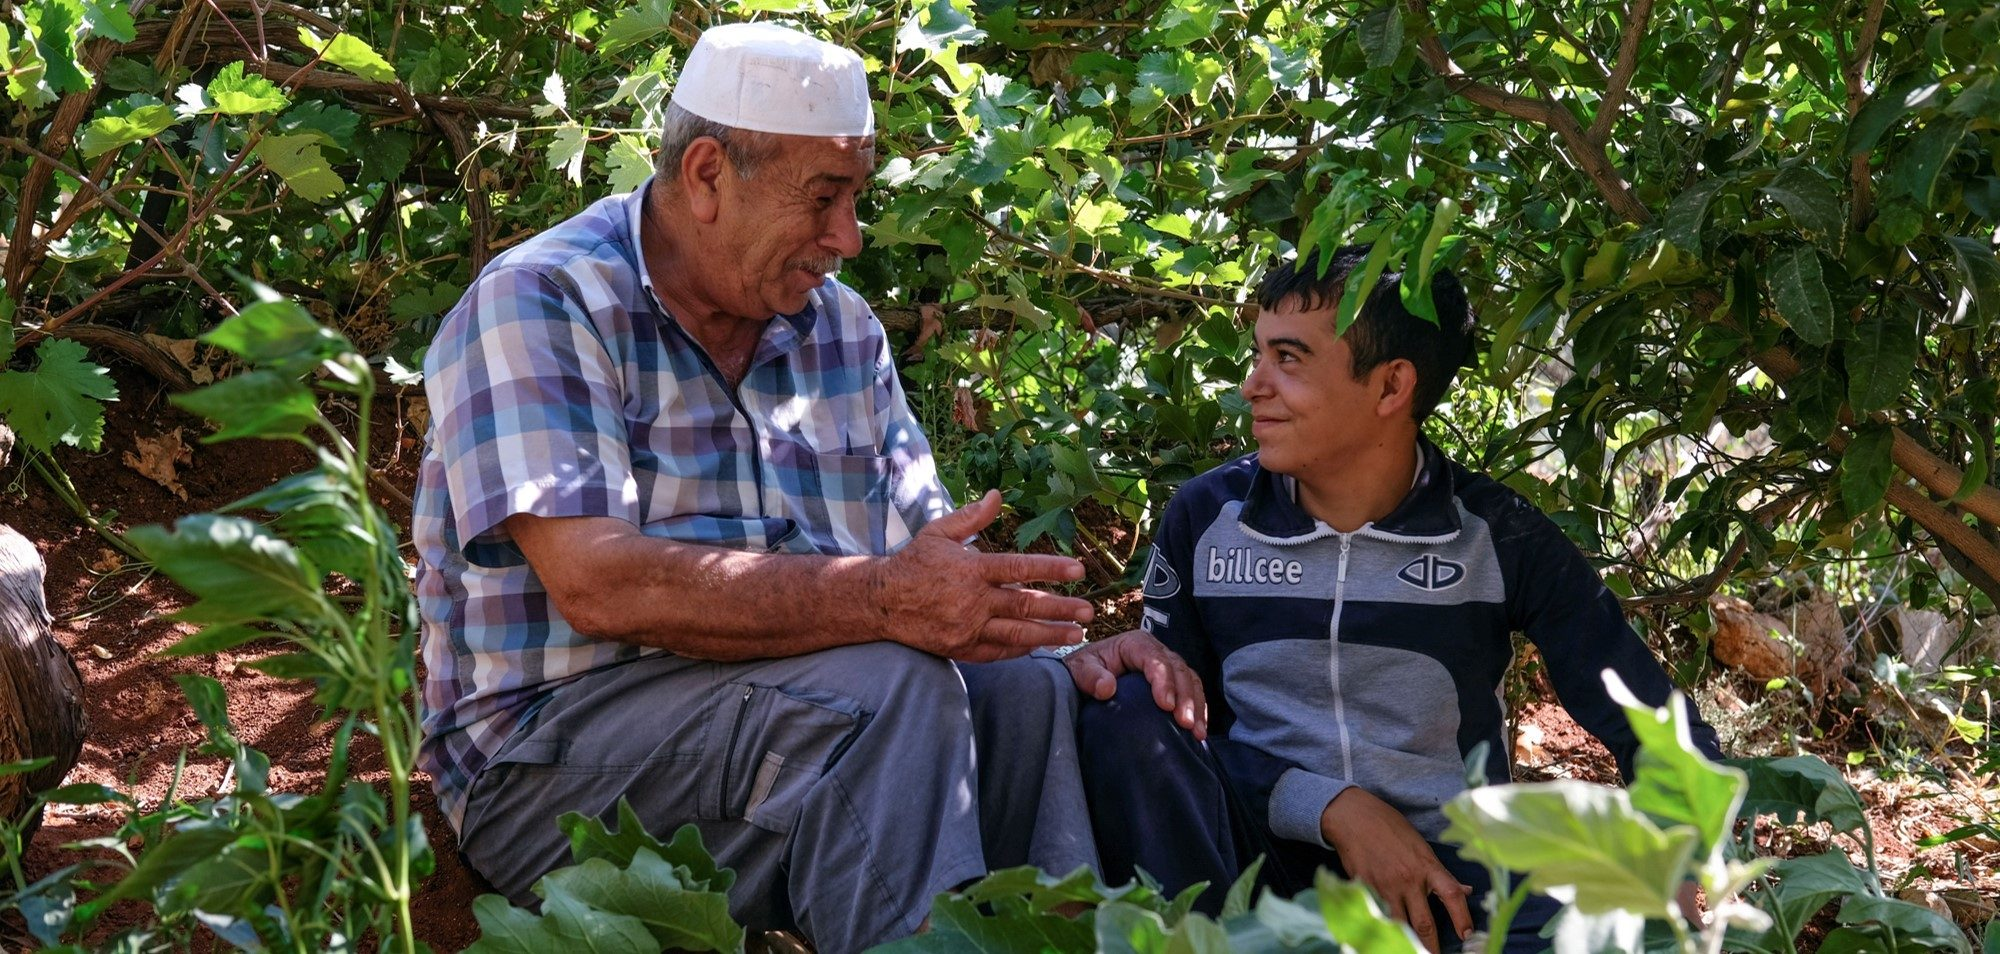 An older man and a younger boy smiling, surrounded by trees